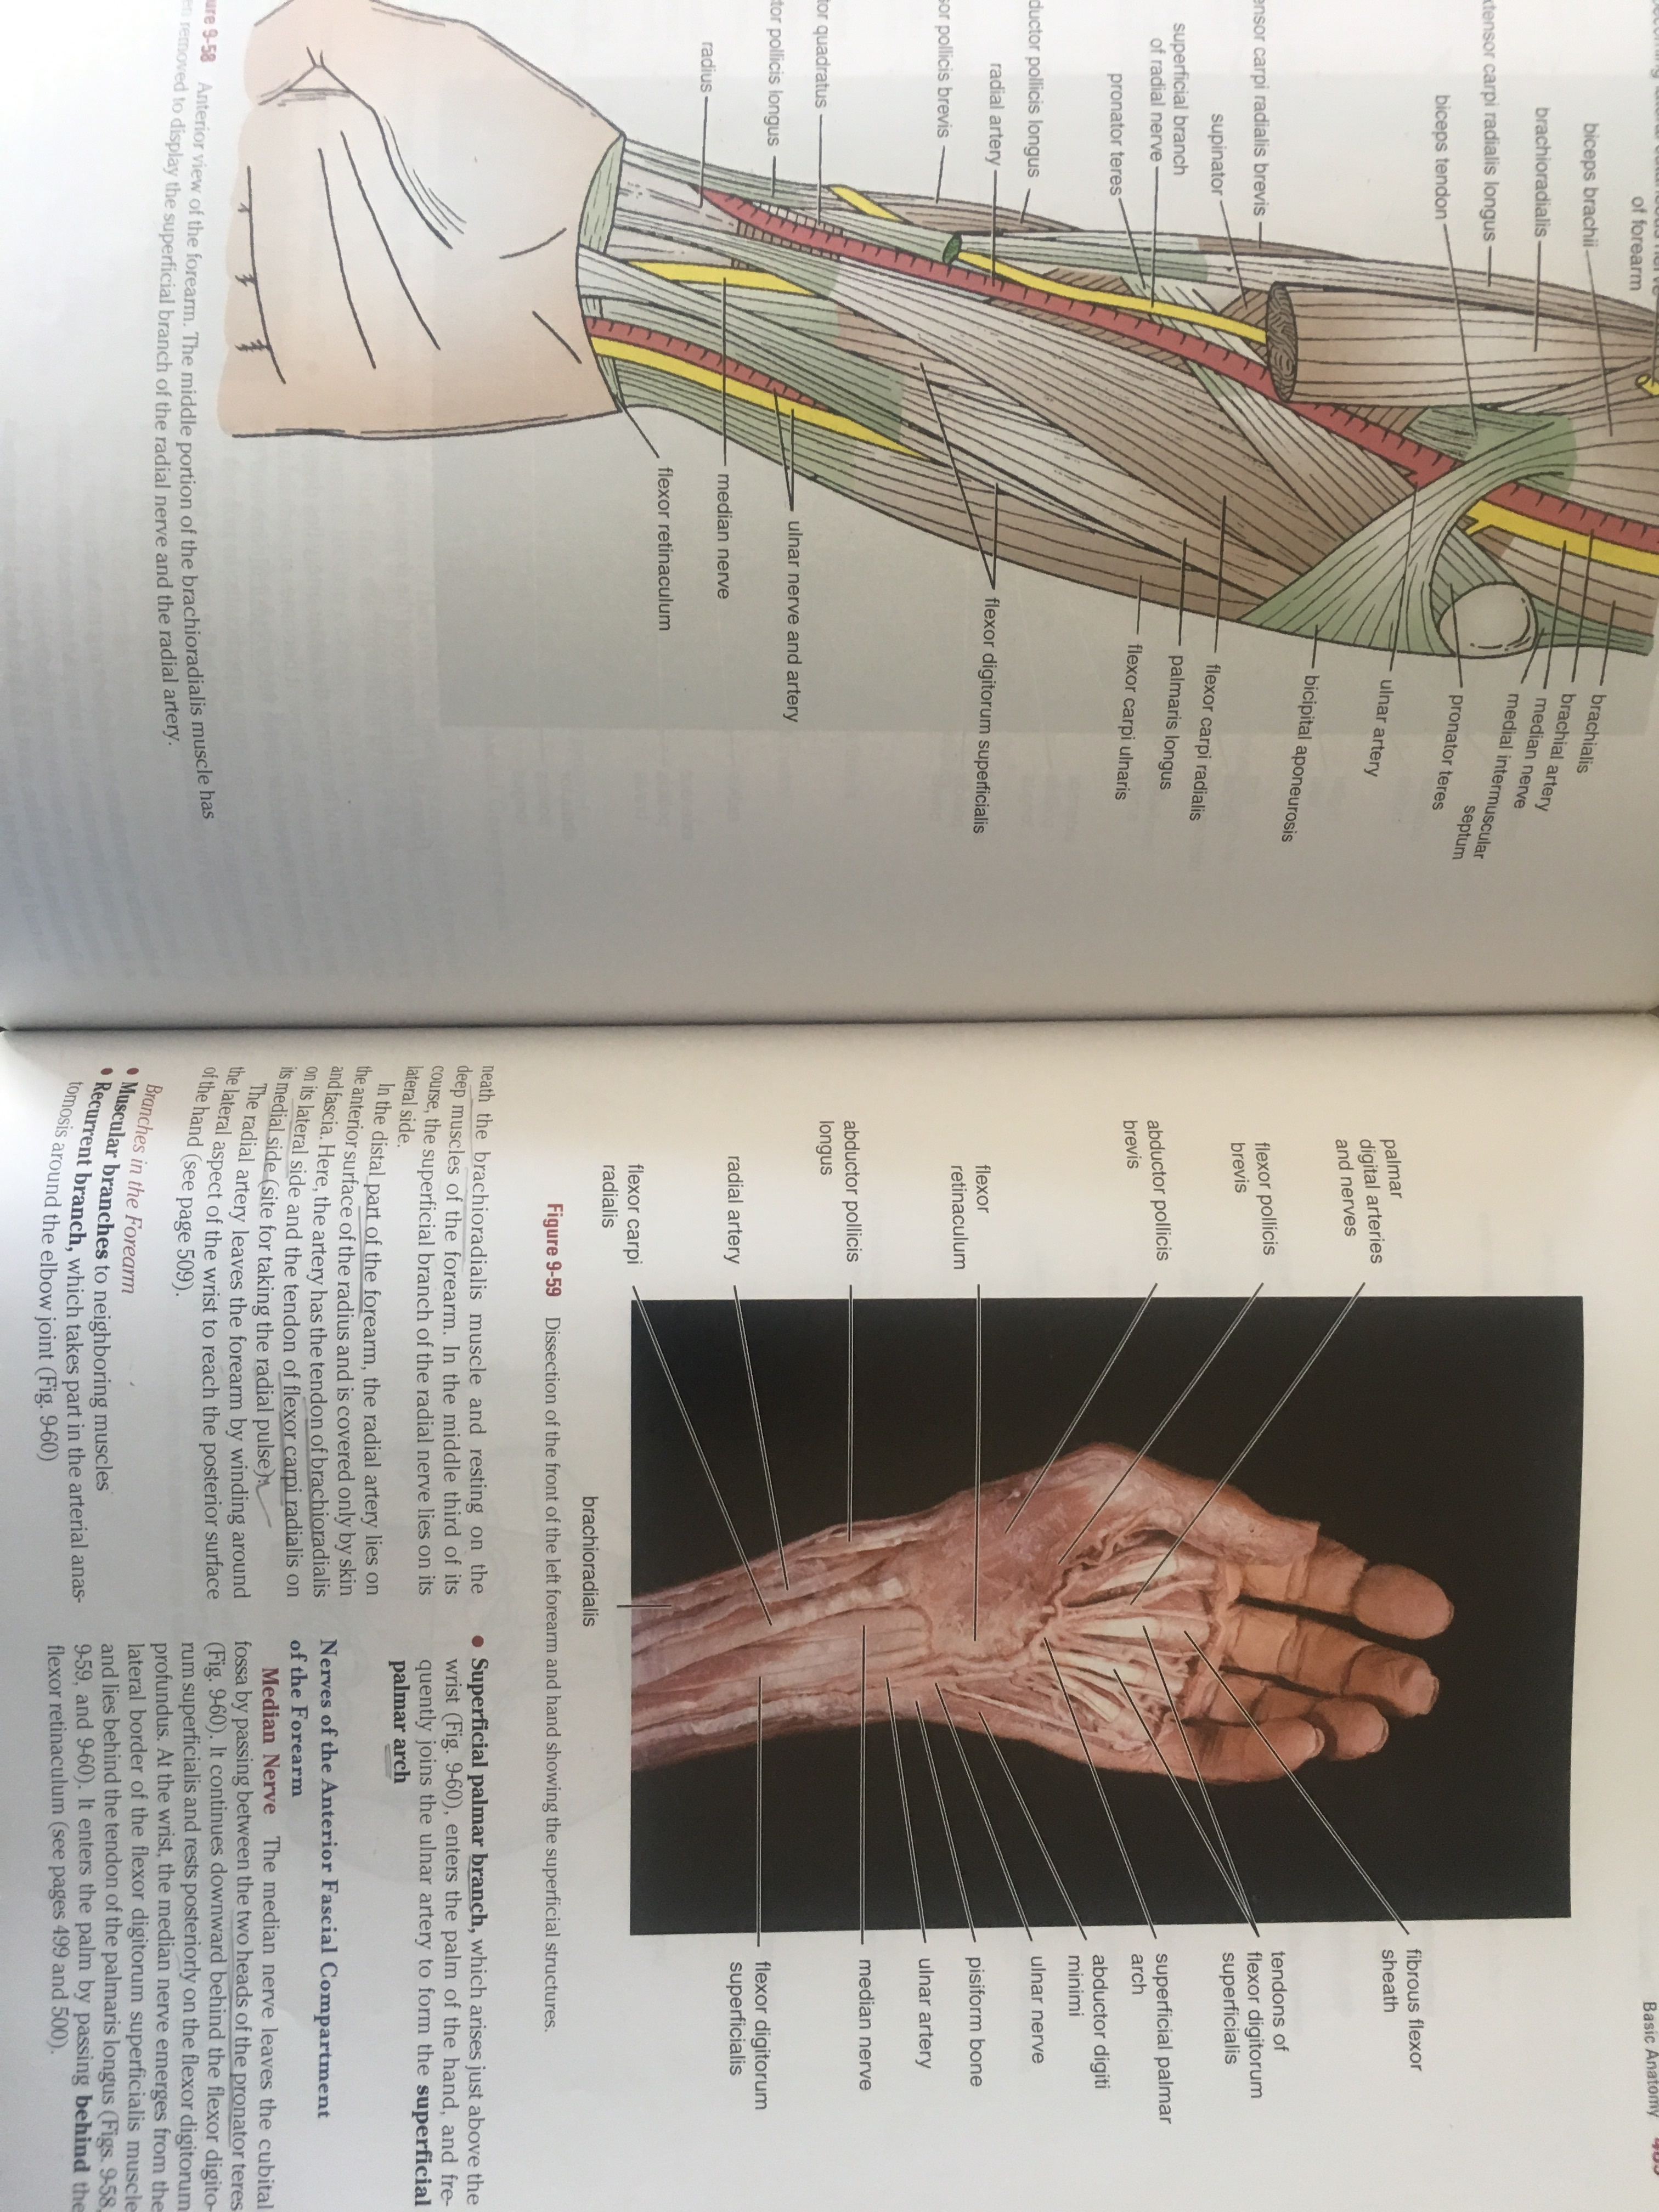 Snell Clinically Oriented Anatomy Pdf